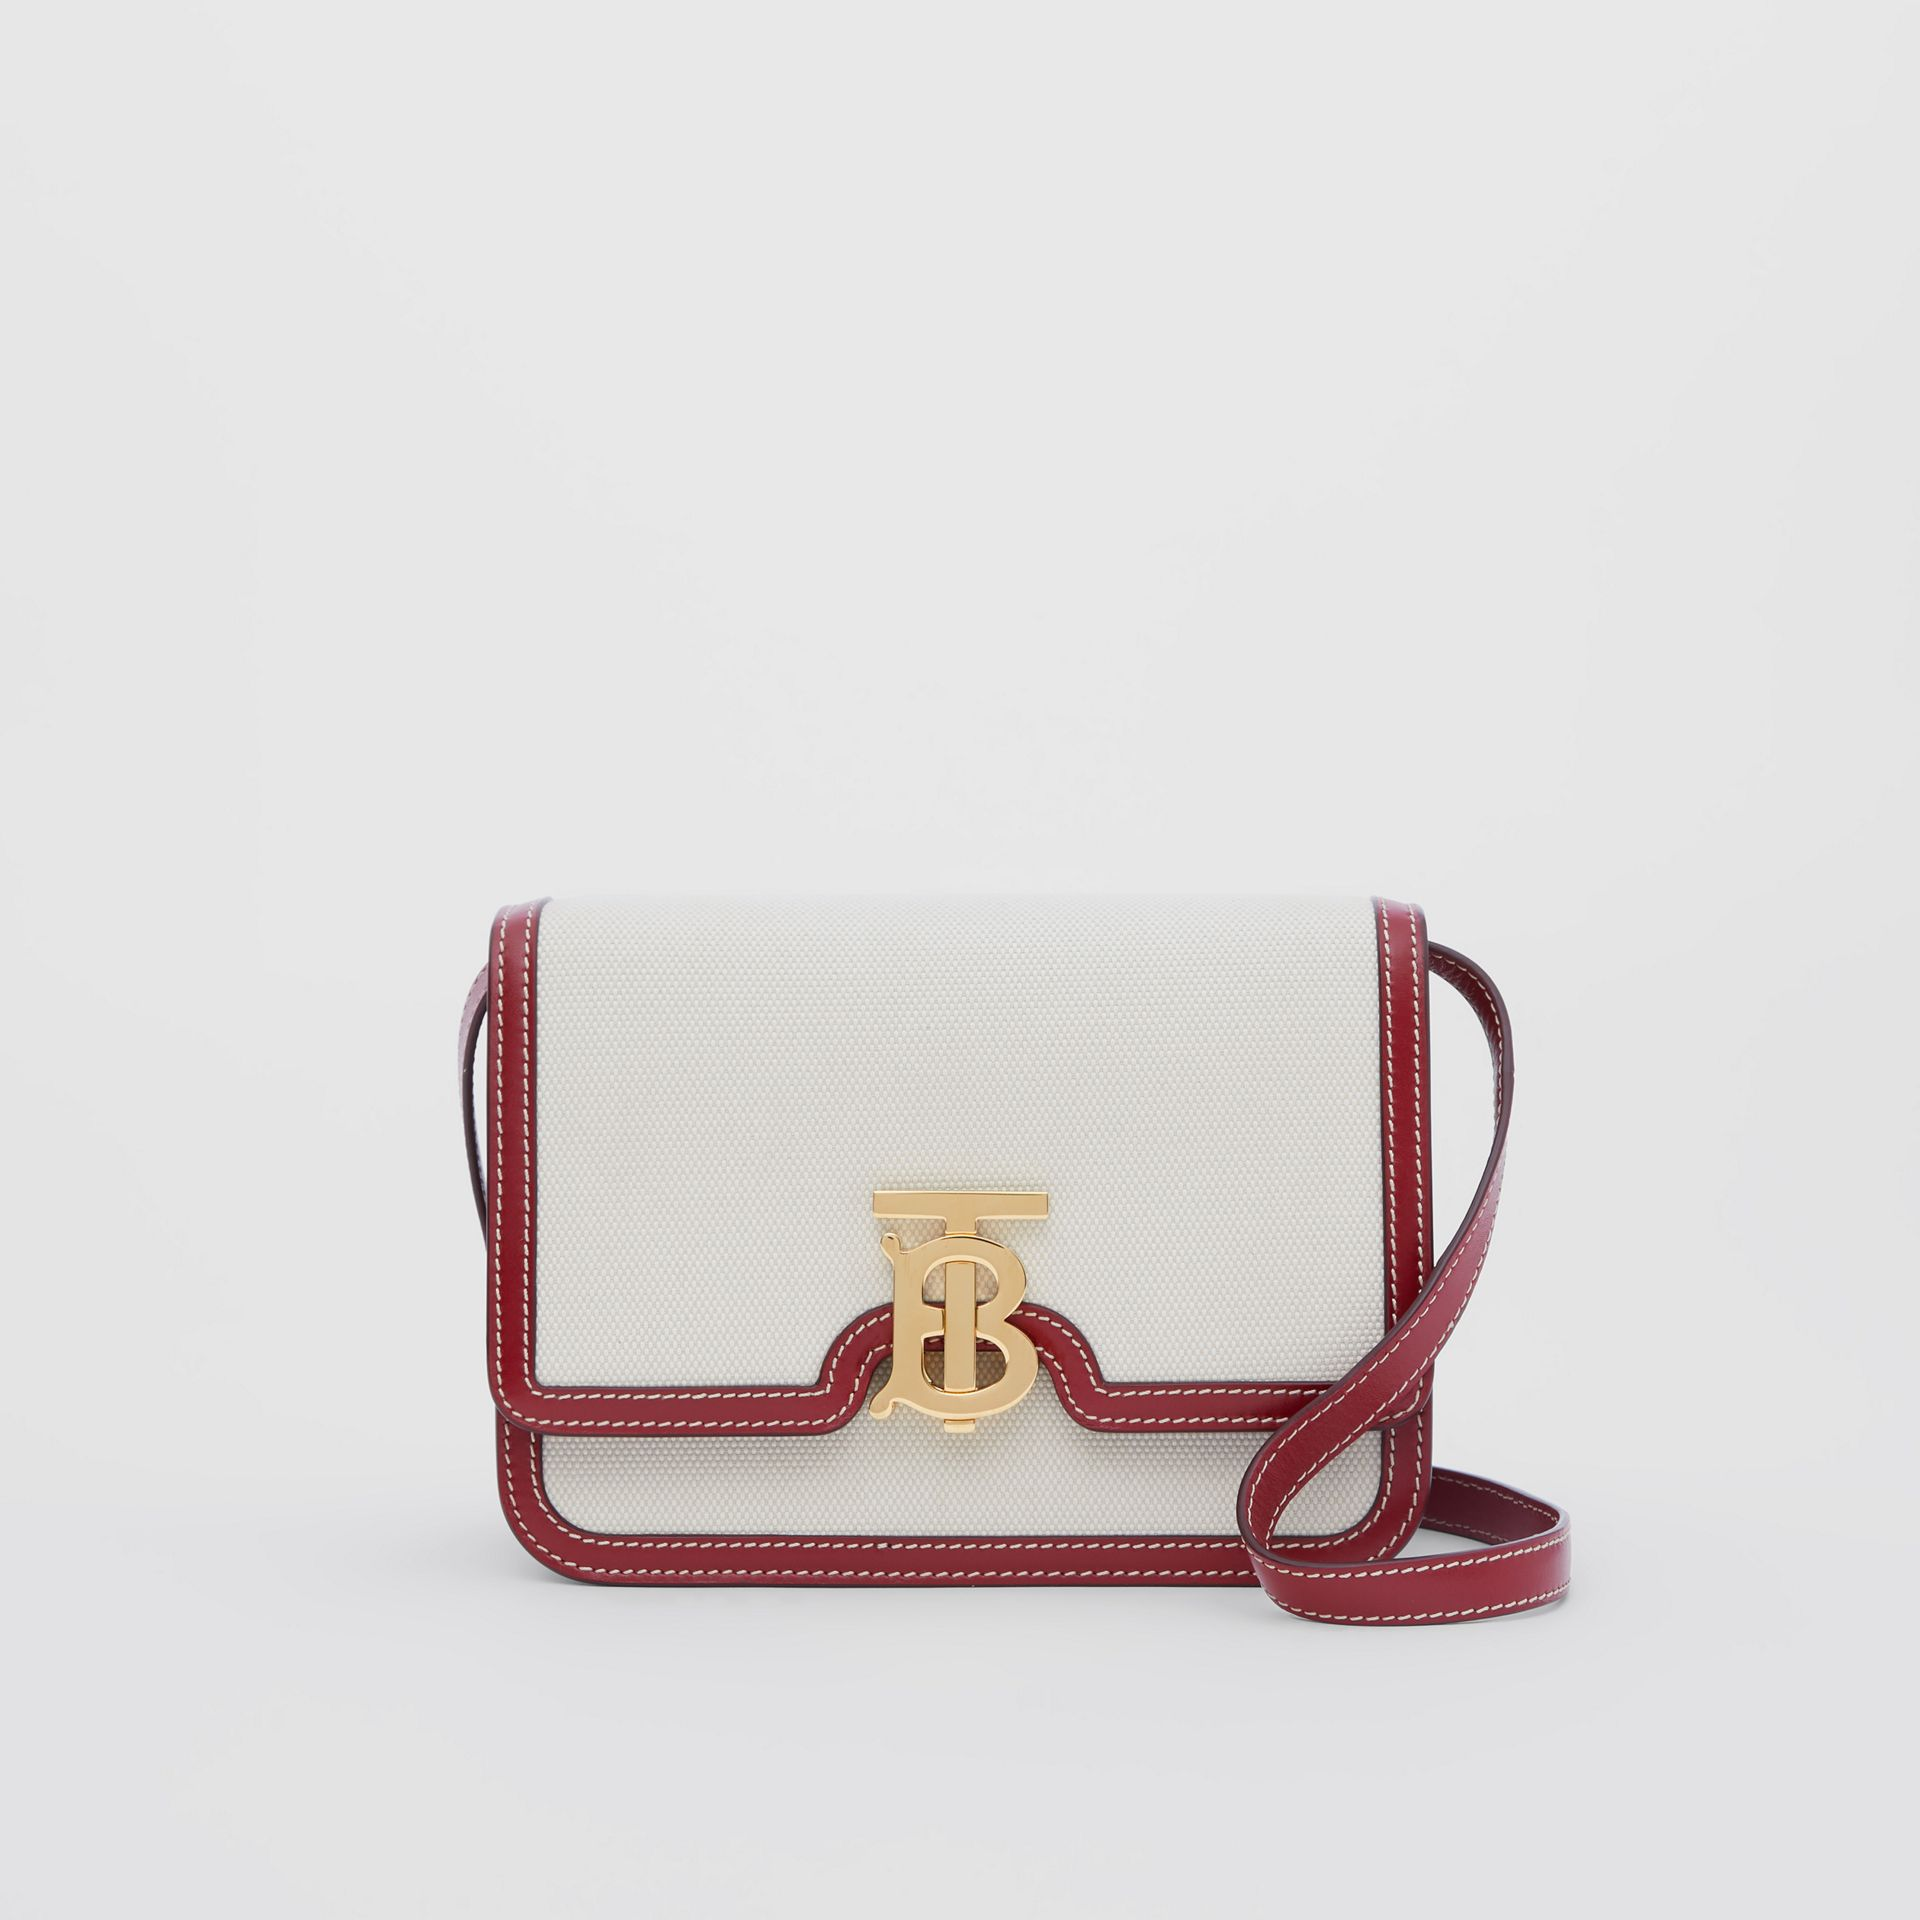 Small Two-tone Canvas and Leather TB Bag in Natural/dark Carmine - Women | Burberry - gallery image 10